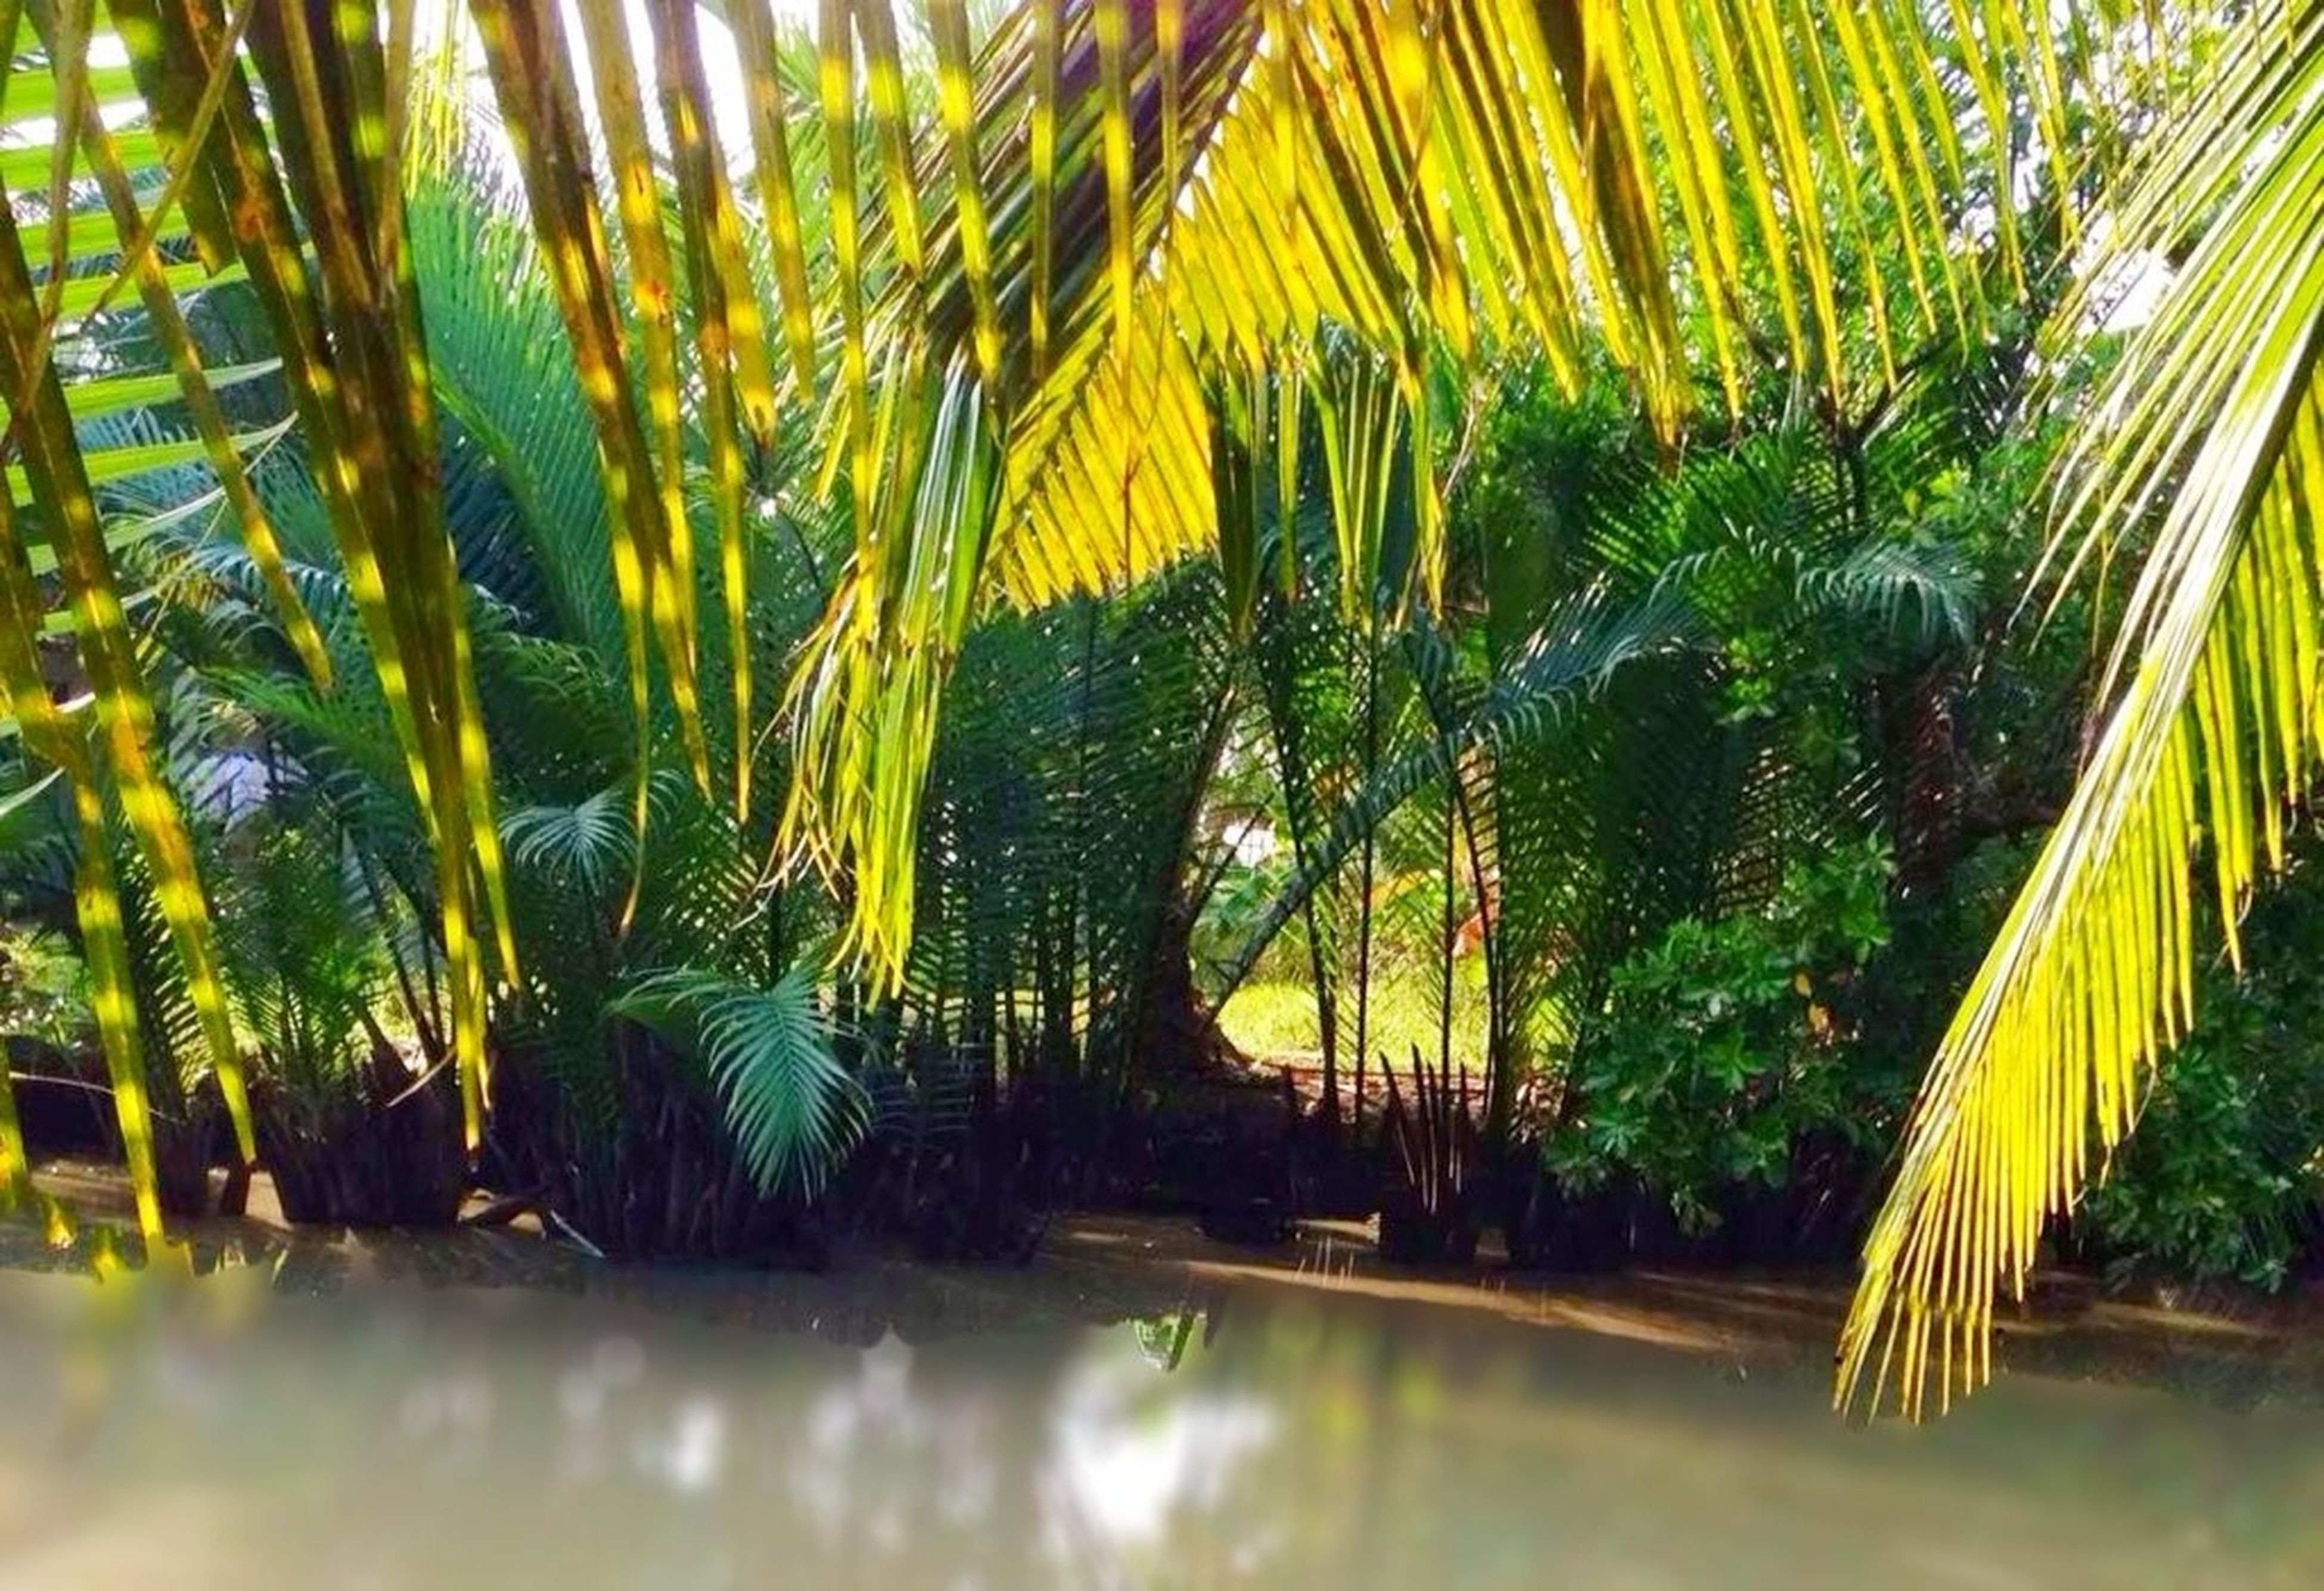 growth, tree, green color, nature, tranquility, palm tree, beauty in nature, water, plant, reflection, leaf, tranquil scene, outdoors, waterfront, pond, scenics, no people, day, sunlight, green